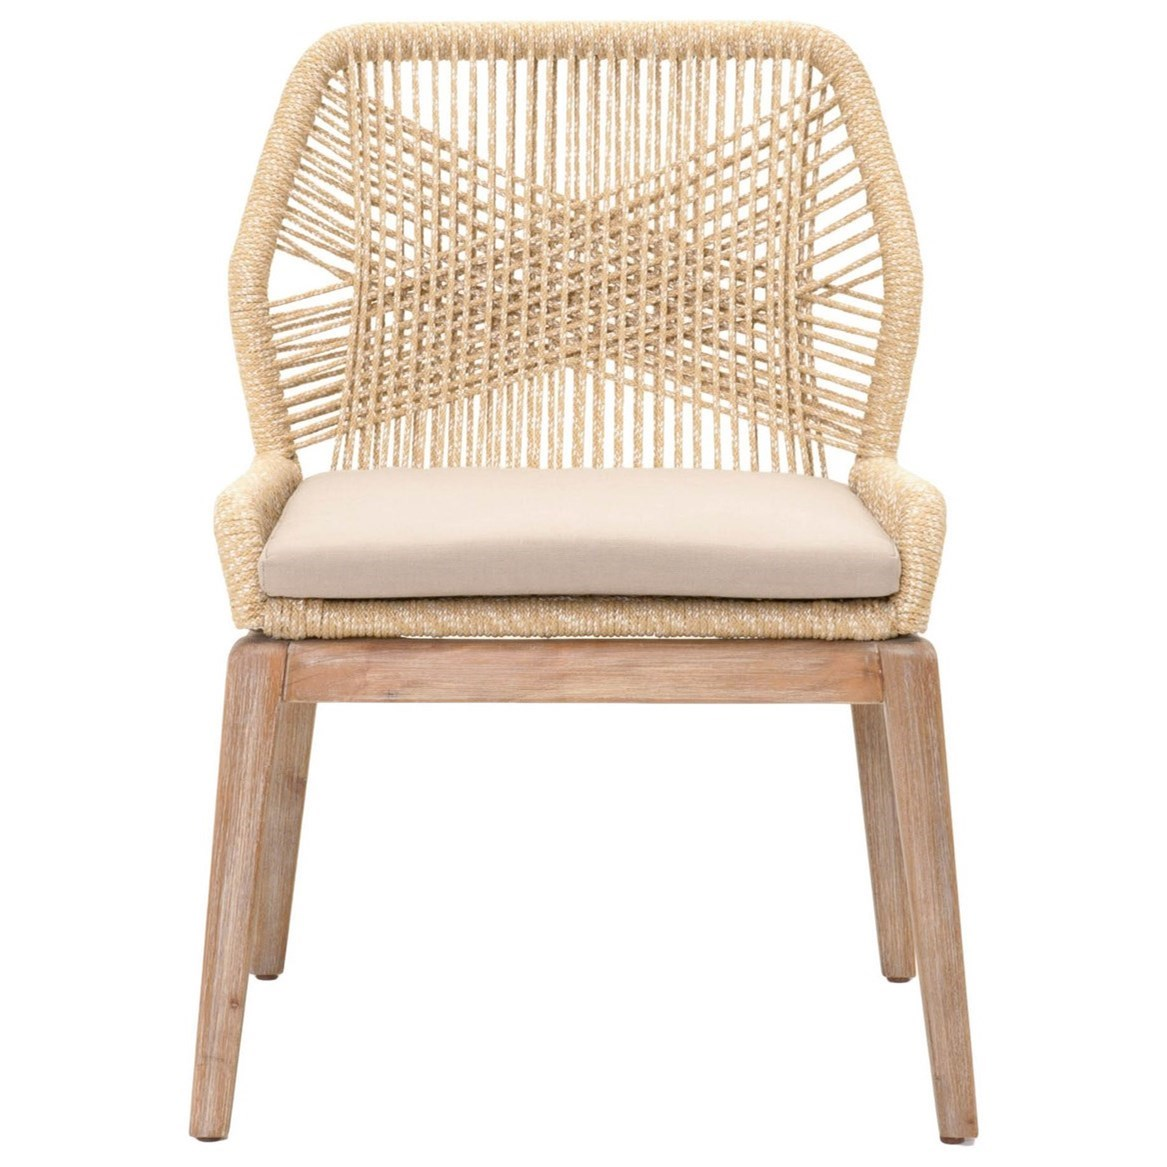 Woven Loom Dining Chair by Essentials for Living at Baer's Furniture